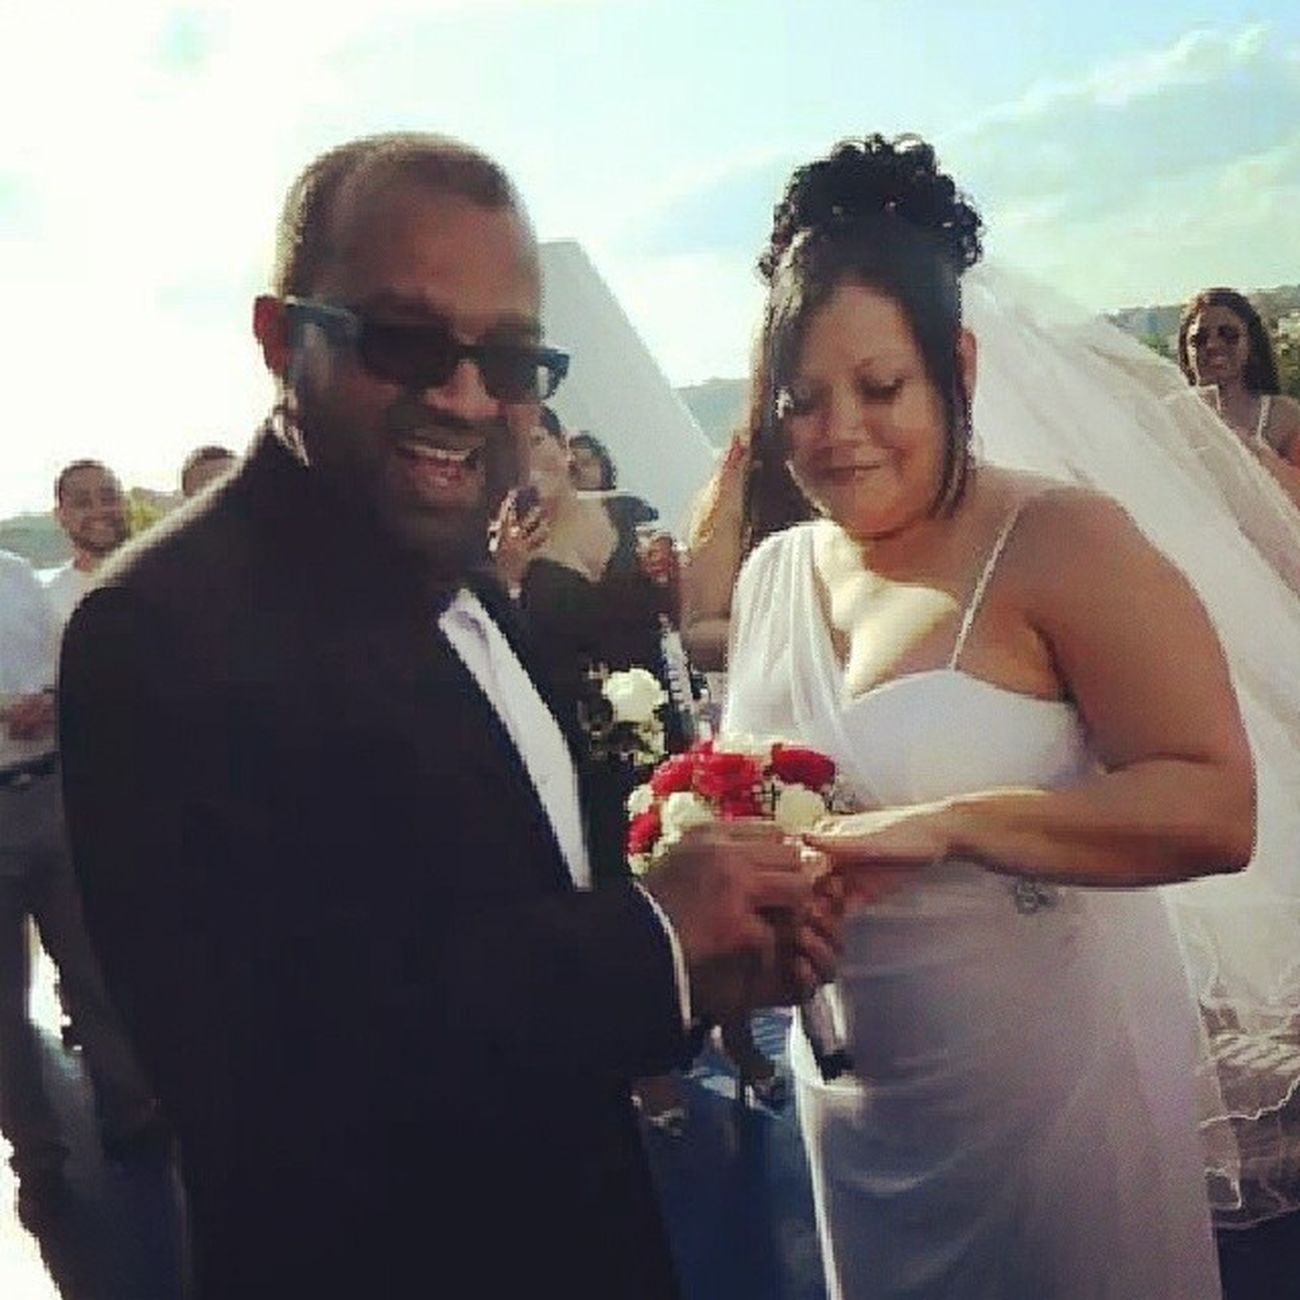 Congratulations Mr and Mrs Oswald Ramsammy!!! Newlyweds Justgotmarried Finallyhitched May17th2014 celebratinglife celebratinglove familyfirst yearsoflove yearsoffriendship theperfectunion godsrichestblessings MayNoManPutAsunder WhatGodHasBroughtTogether welcometothefamily weloveyou